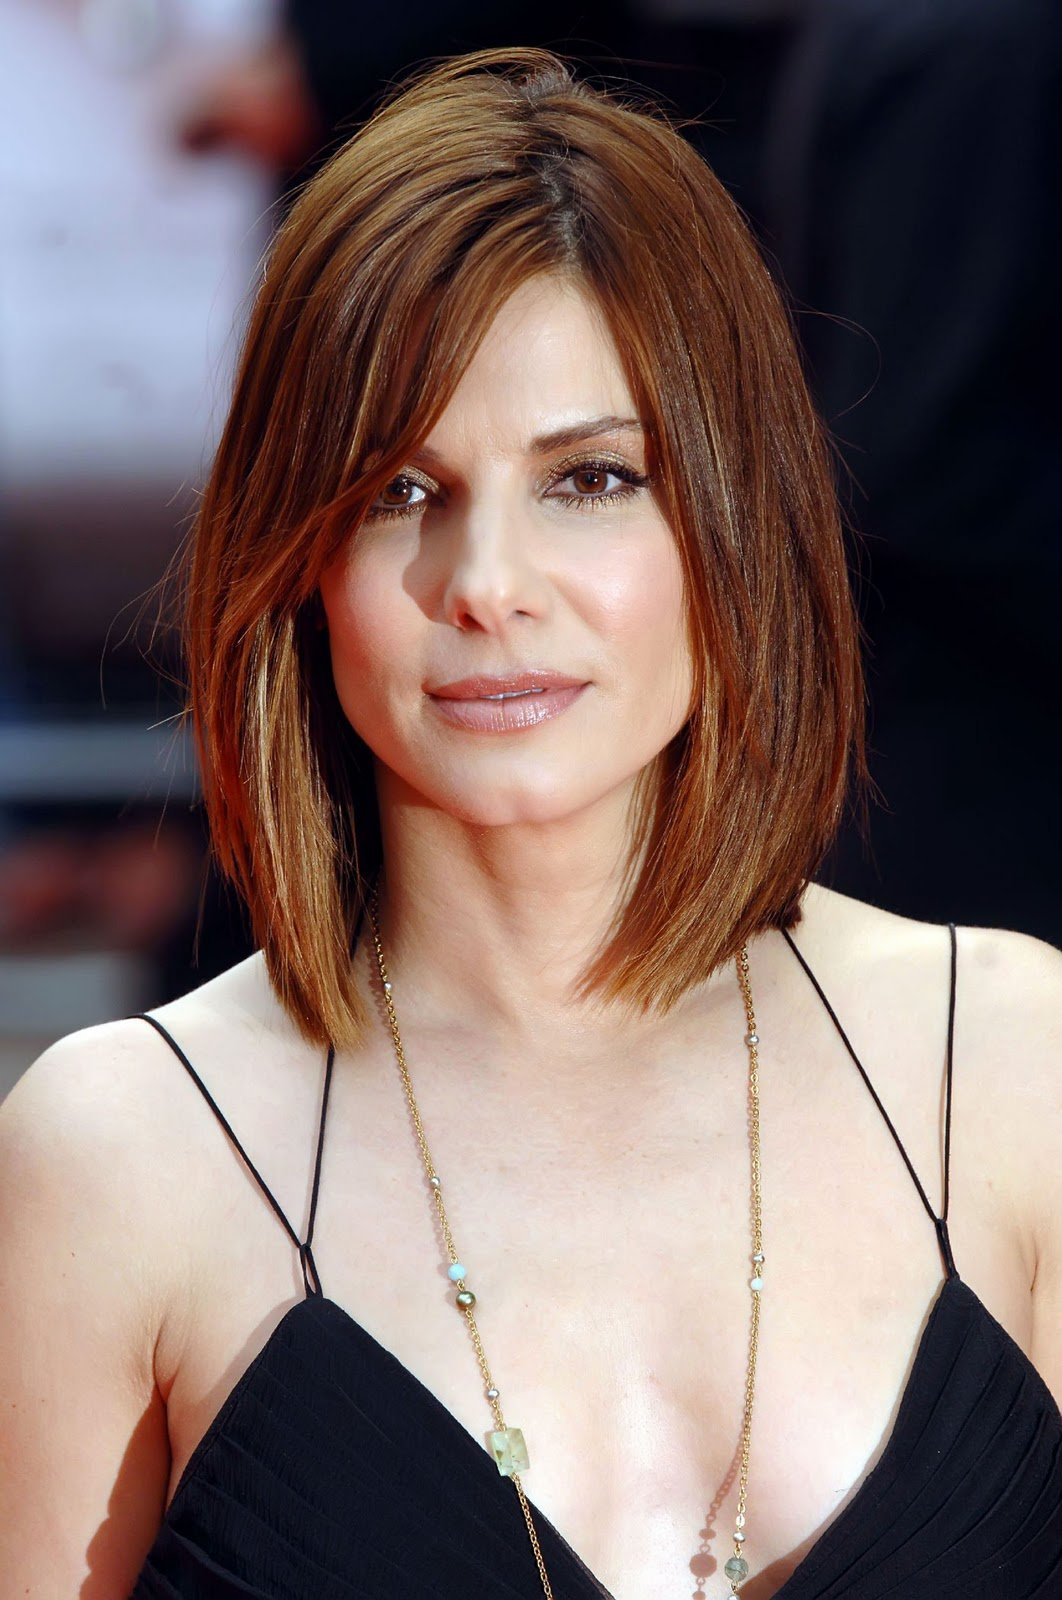 The Best A New Life Hartz Sandra Bullock With Different Hairstyle Pictures